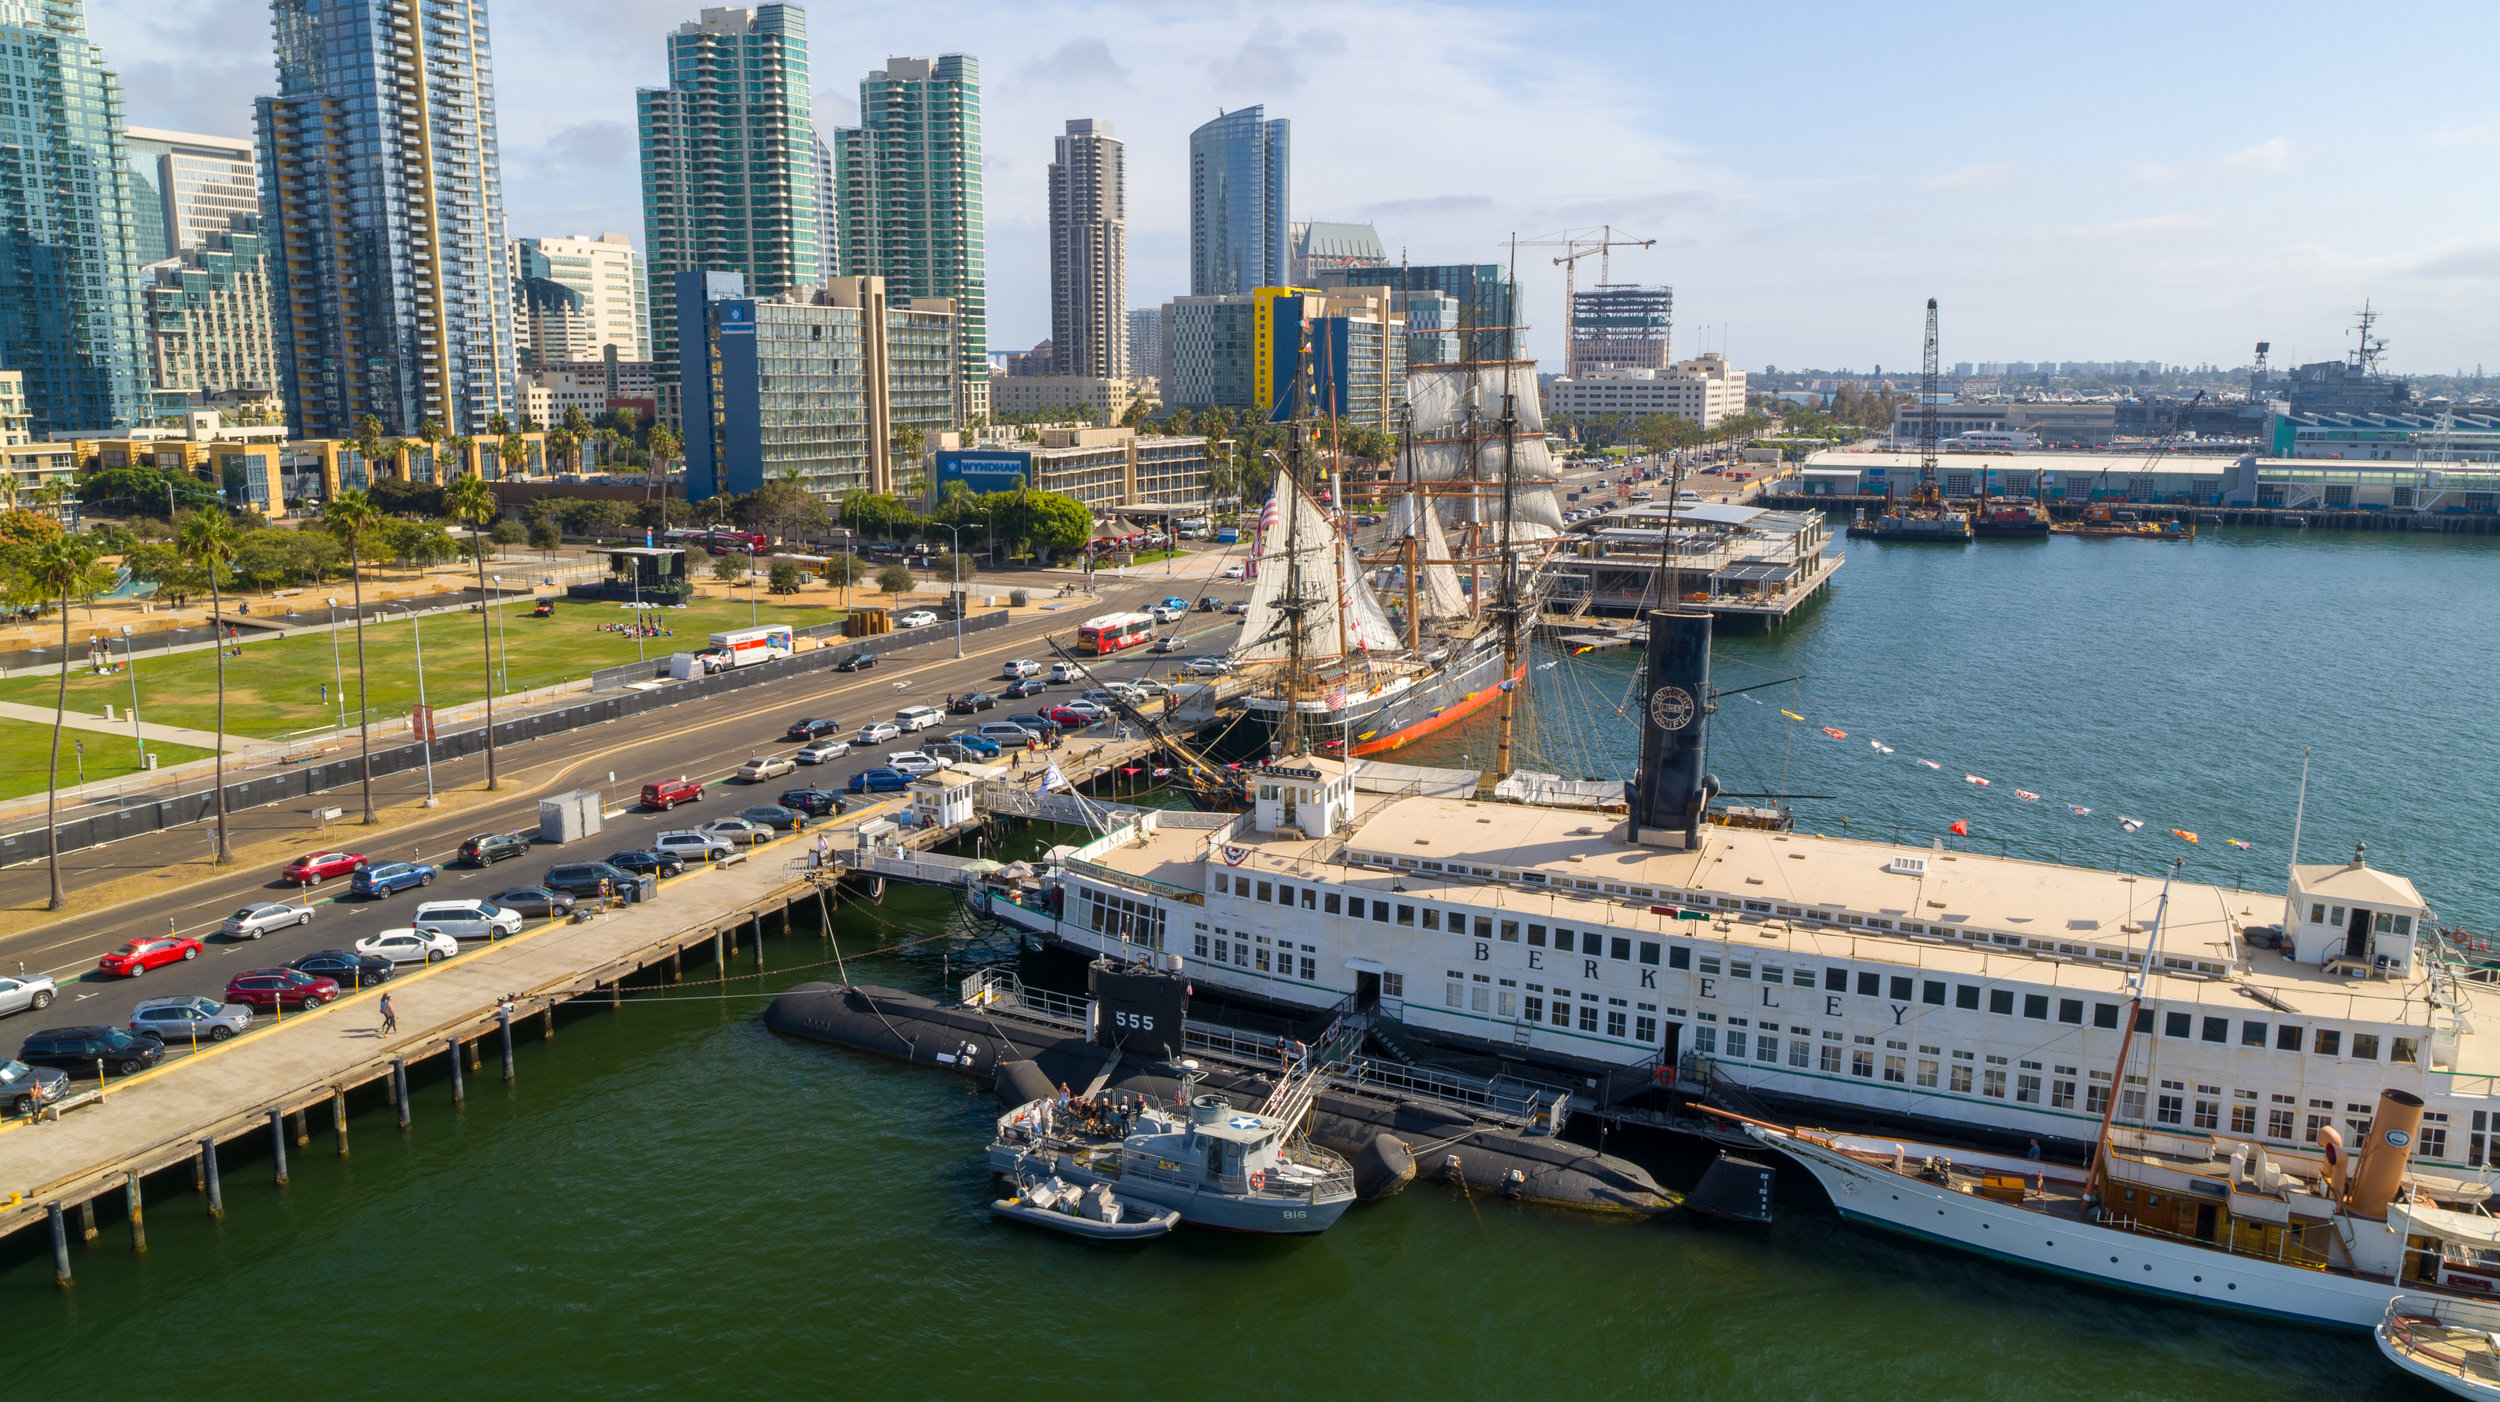 Aerial filming at the MAritime Museum of San Diego for the Smithsonian Channel